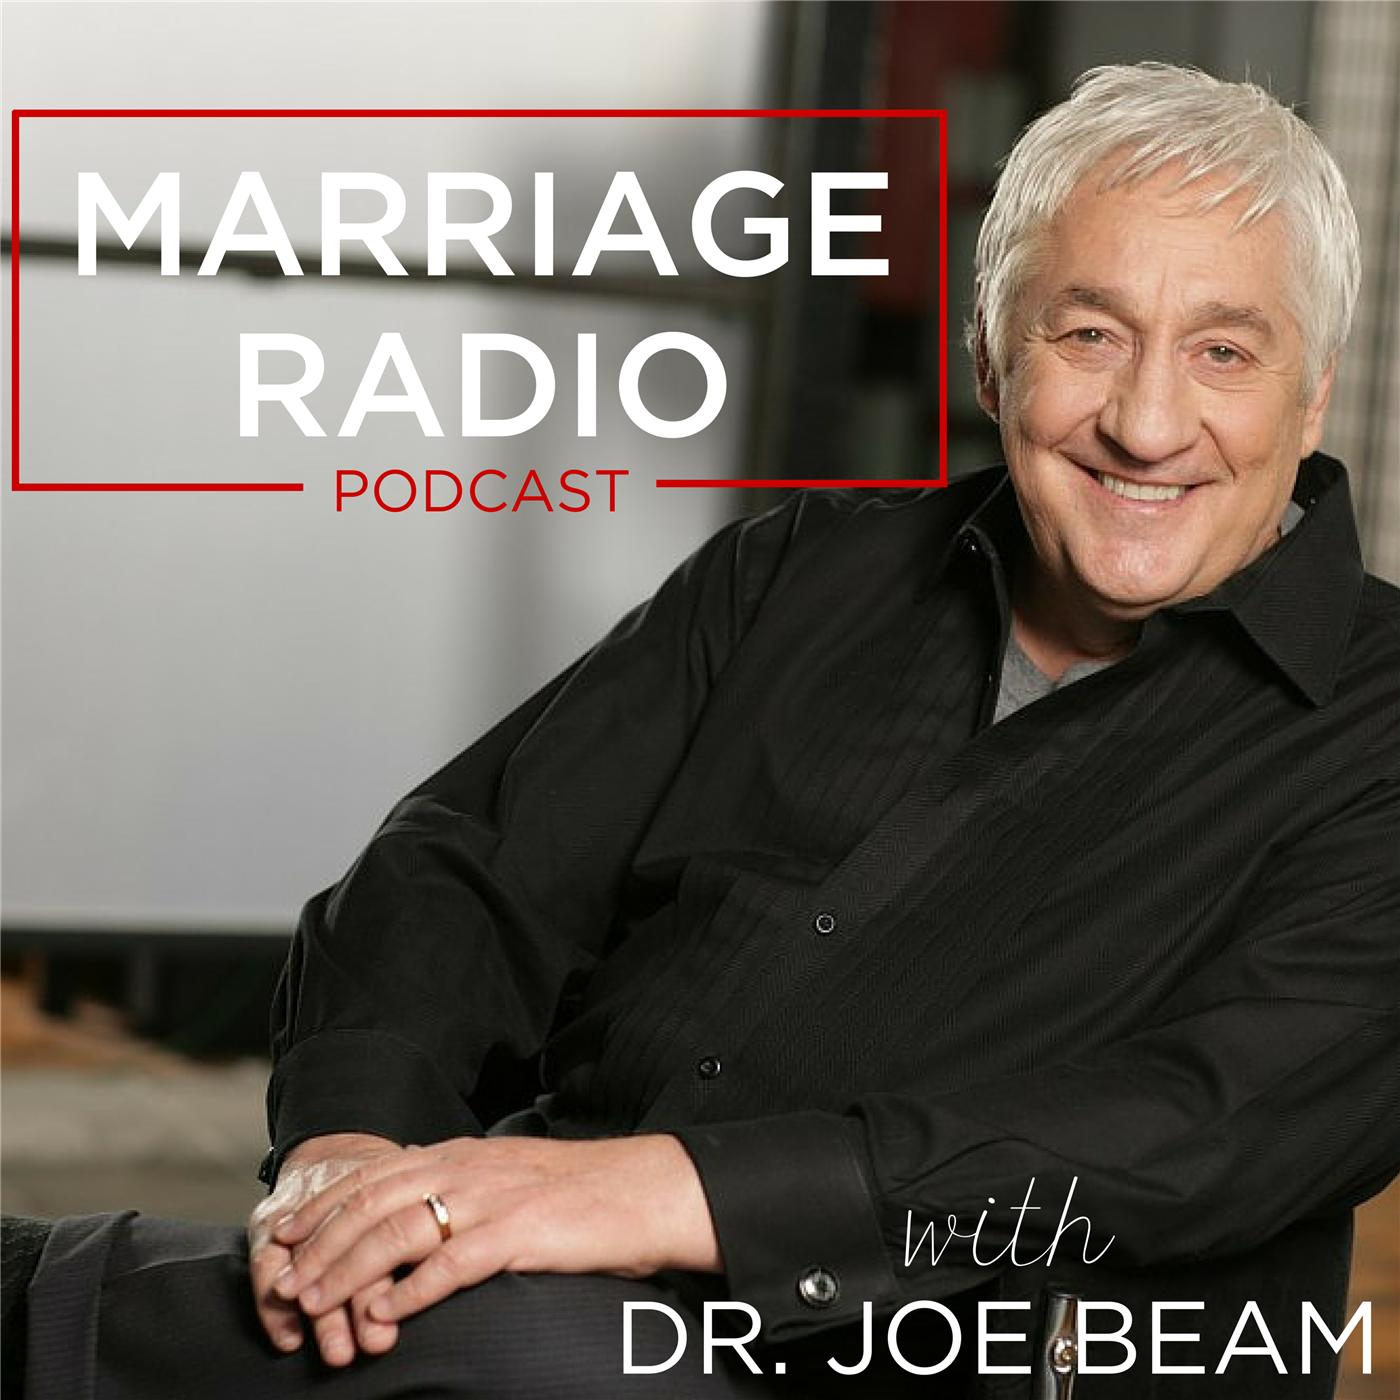 Marriage Radio: Real Help to Save Your Marriage